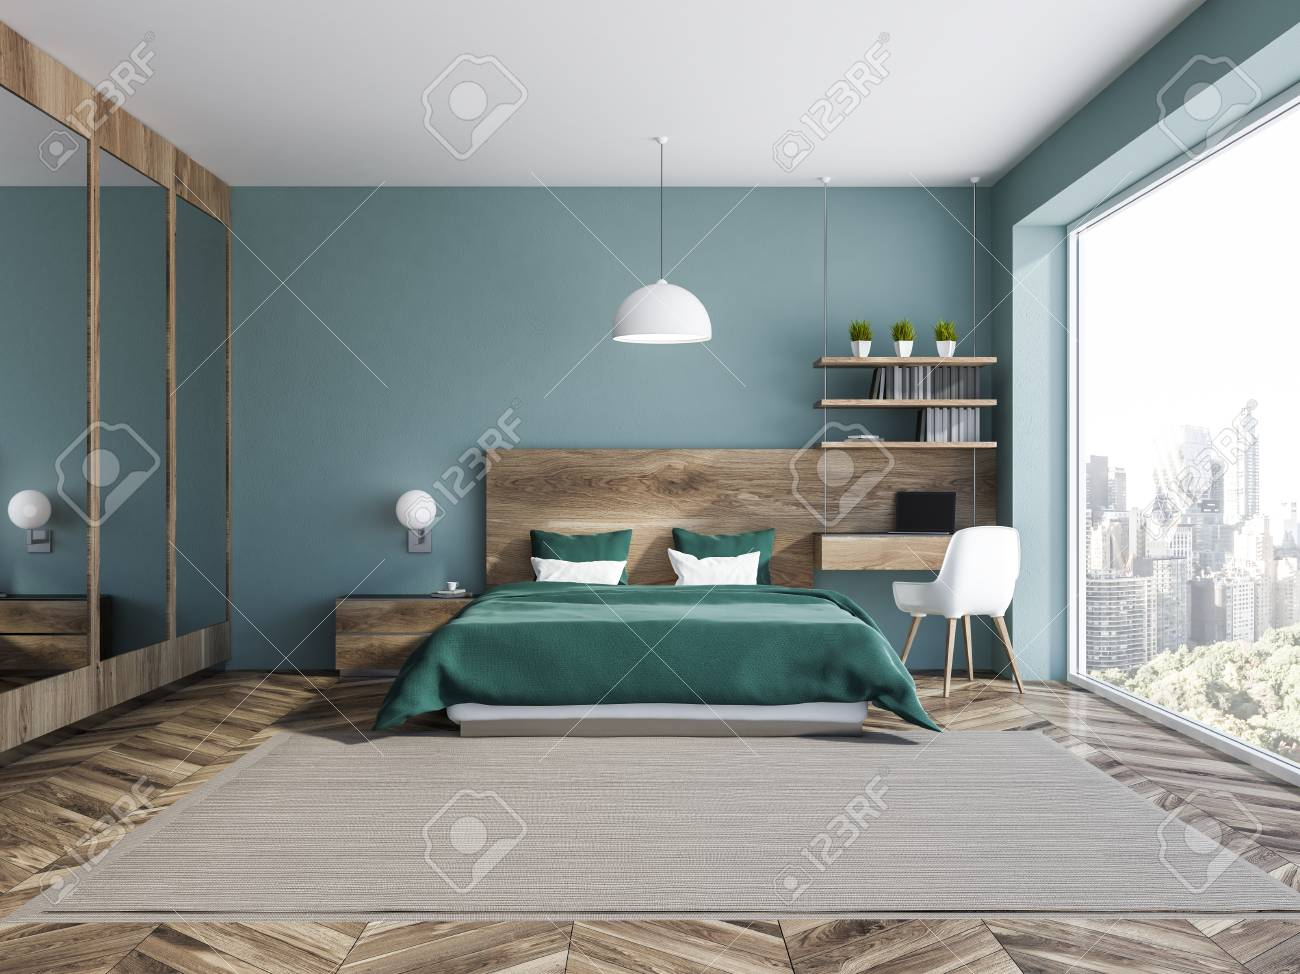 Interior Of Stylish Bedroom With Blue Walls Wooden Floor Green